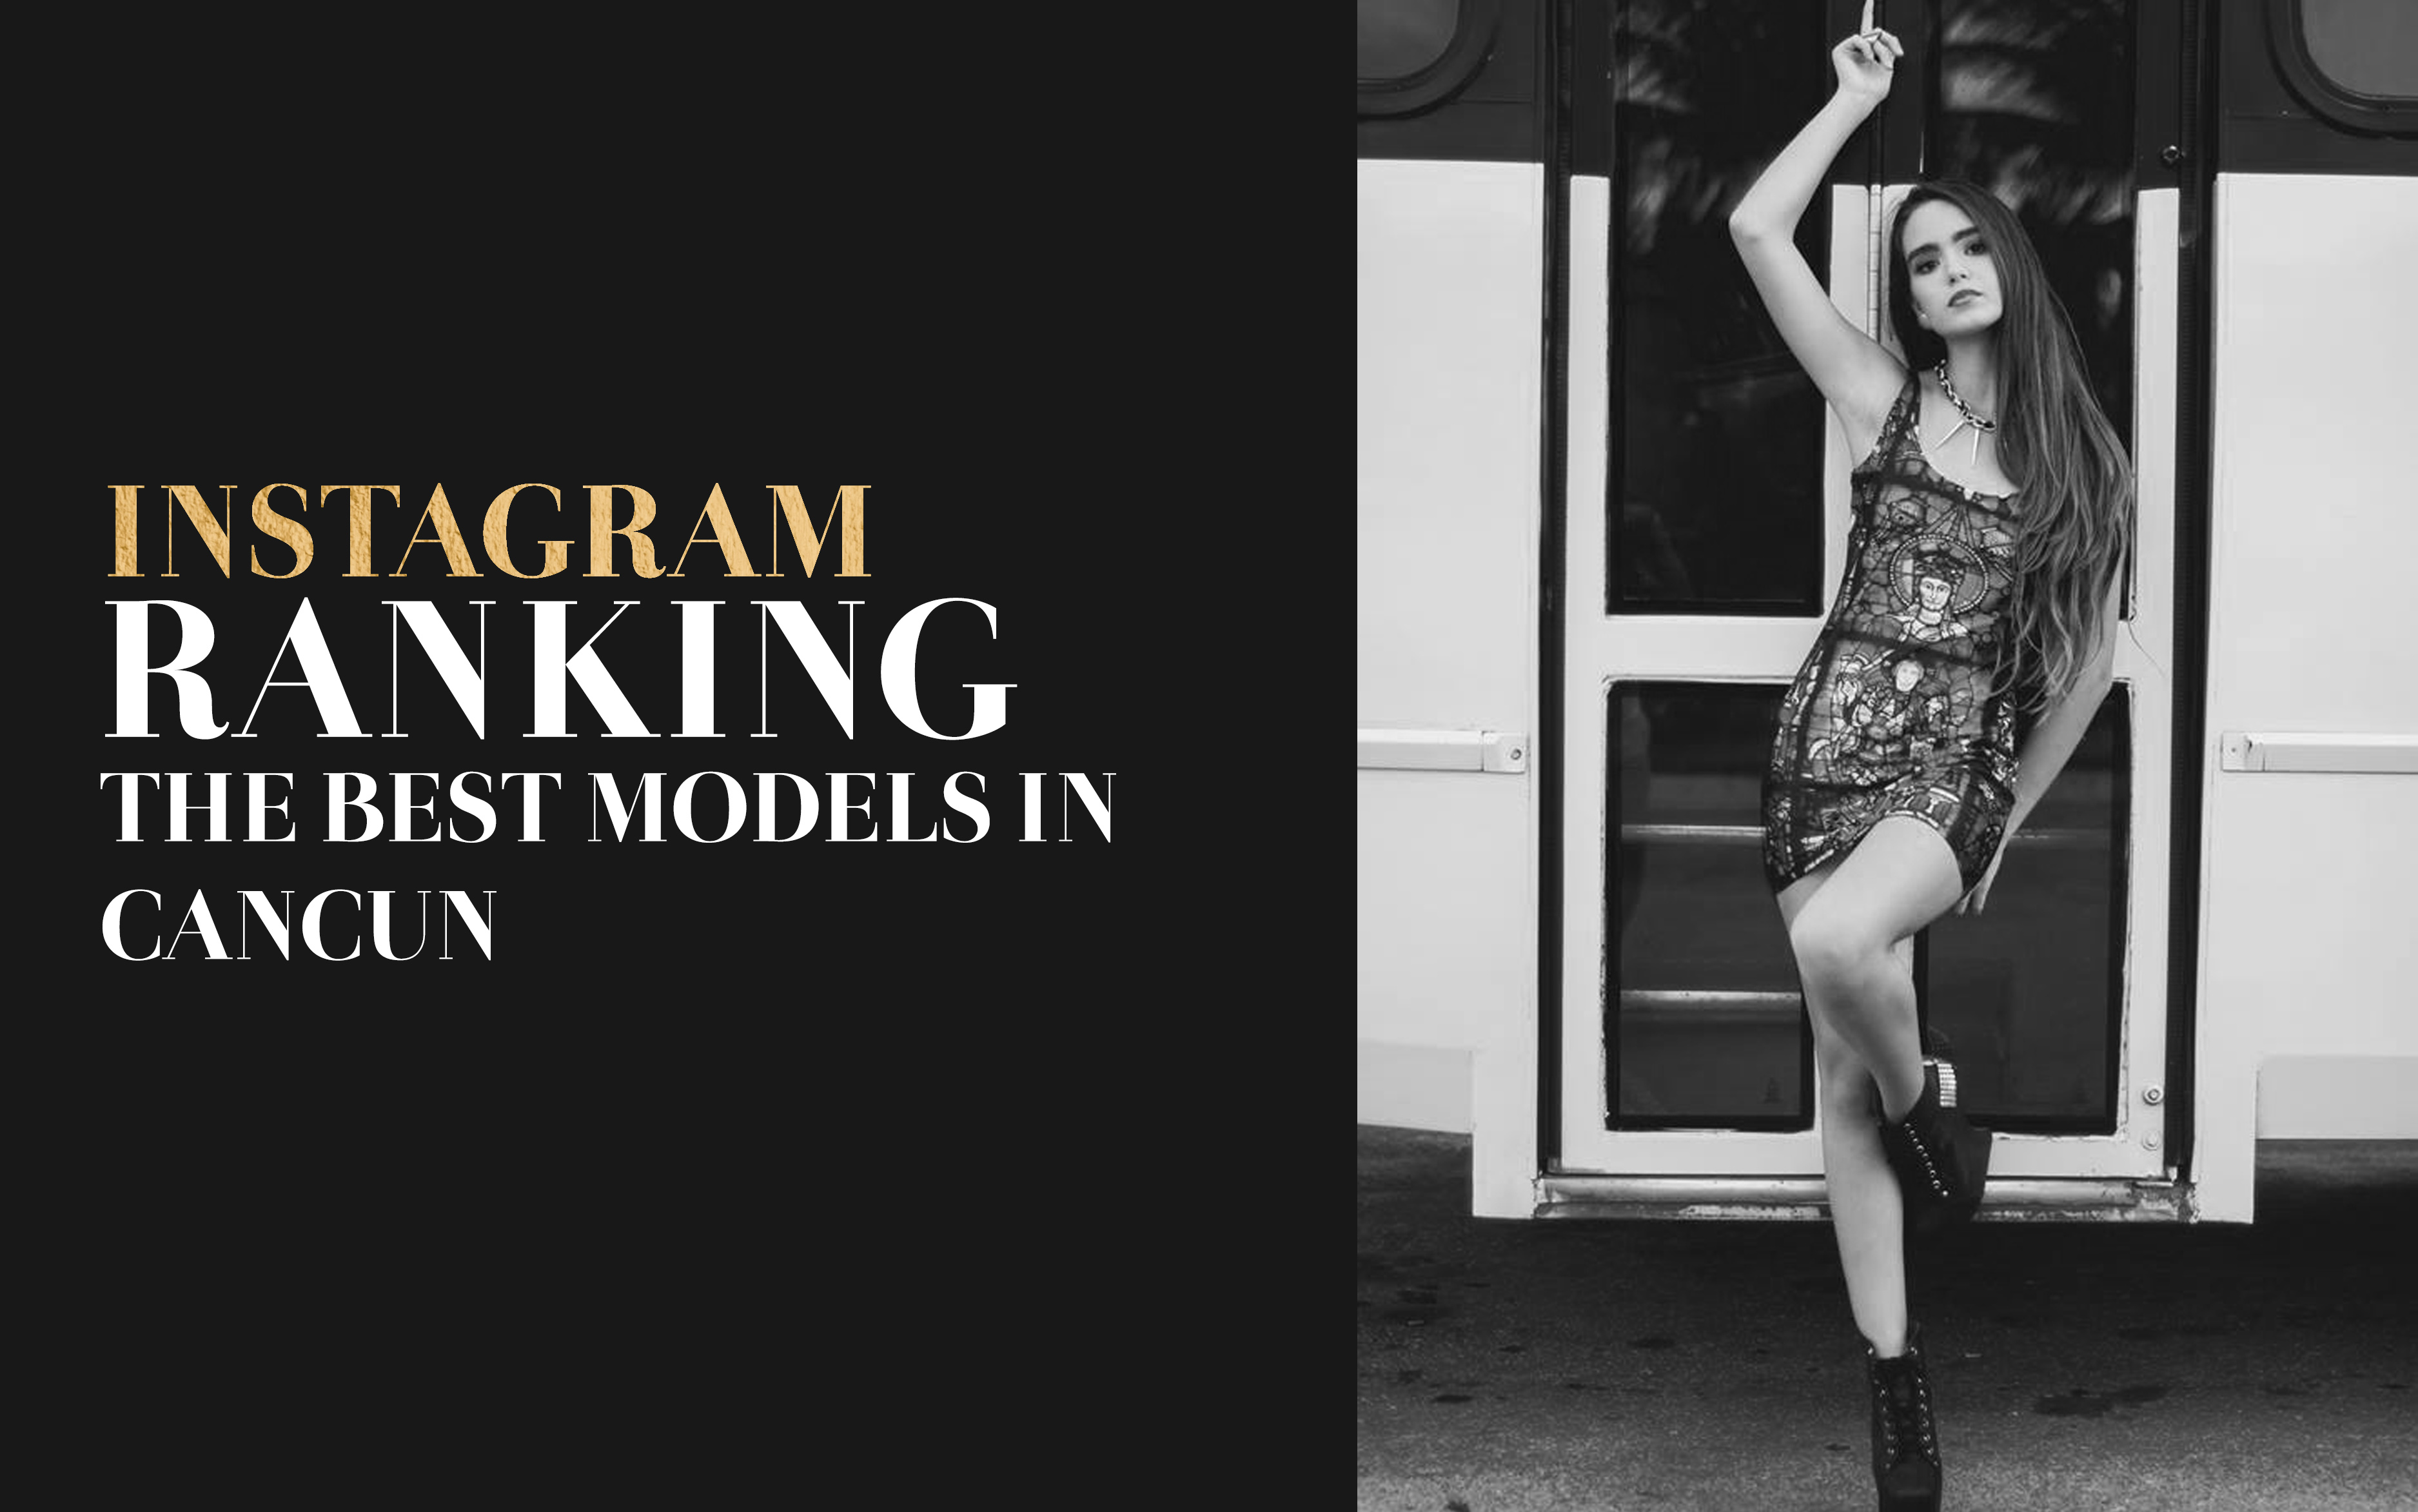 instagram ranking the best models in cancun